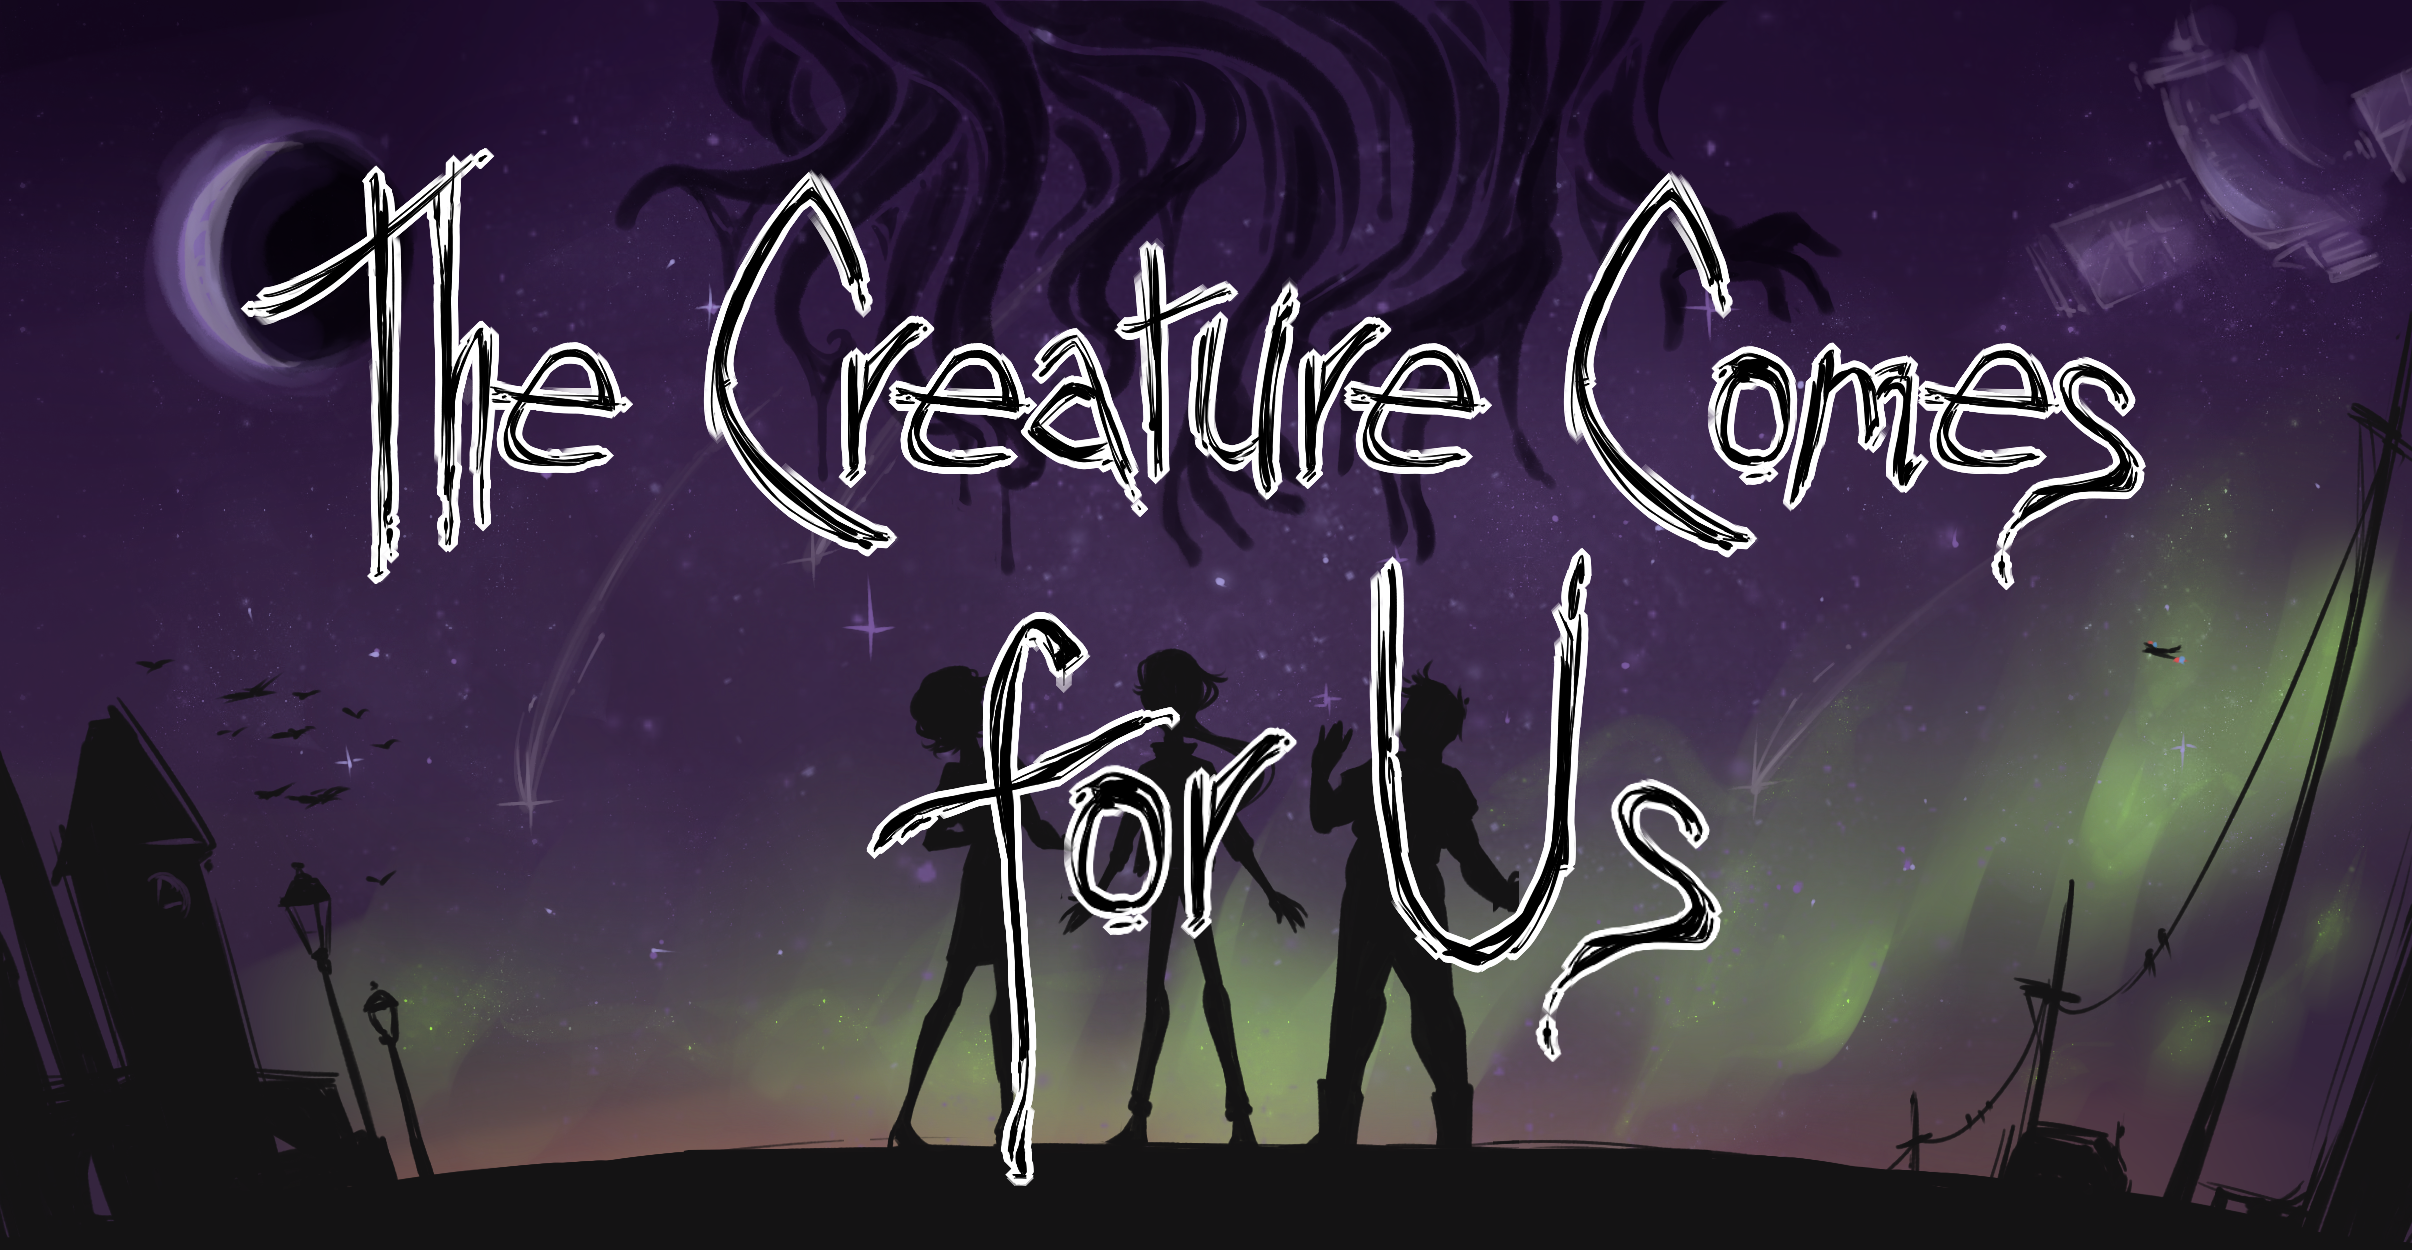 The Creature Comes for Us